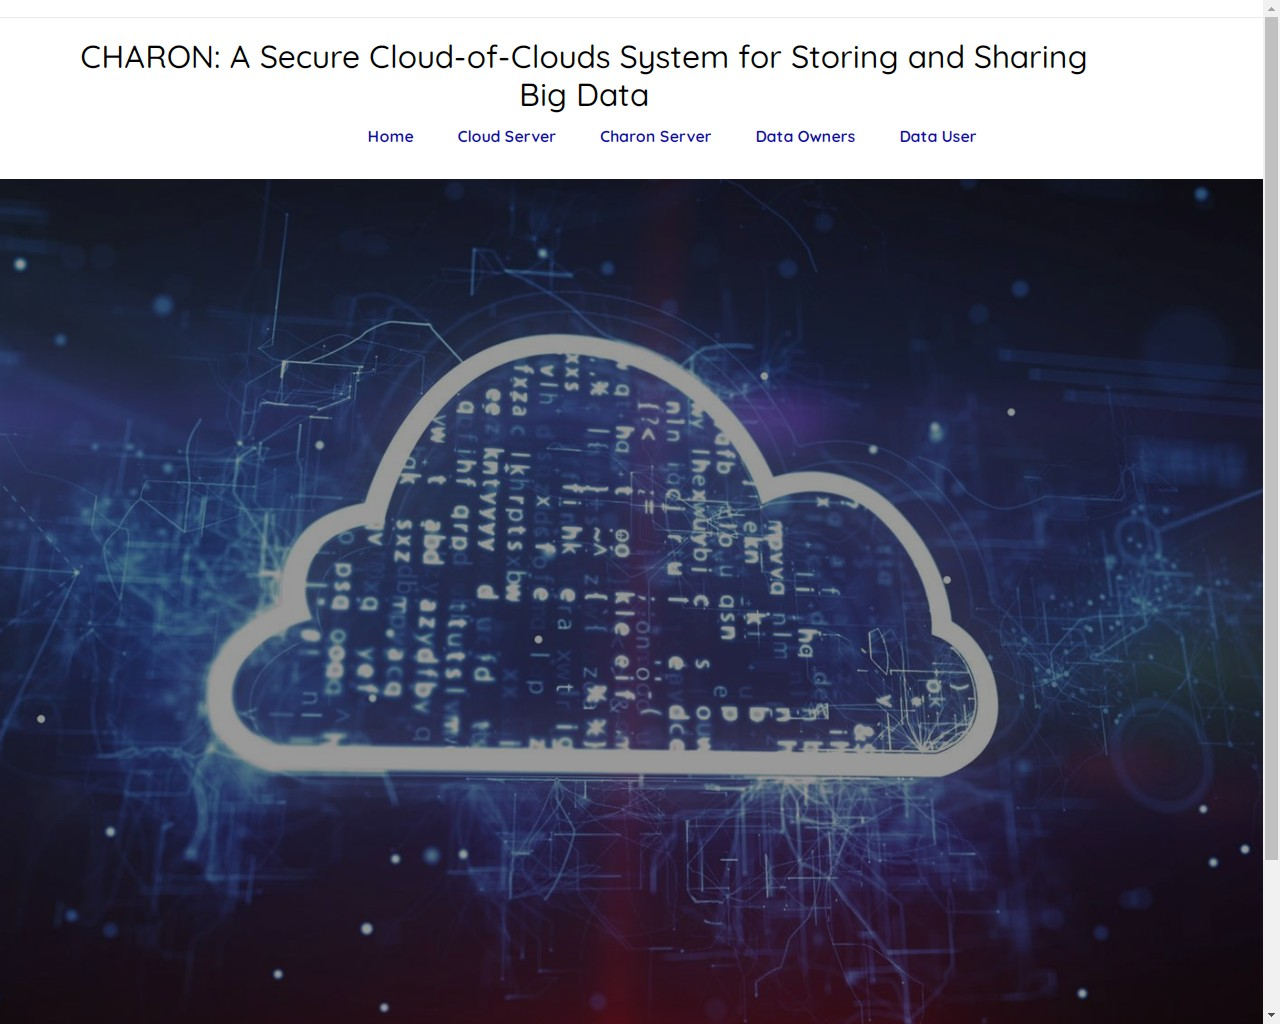 CHARON: A Secure Cloud-of-Clouds System for Storing and Sharing Big Data